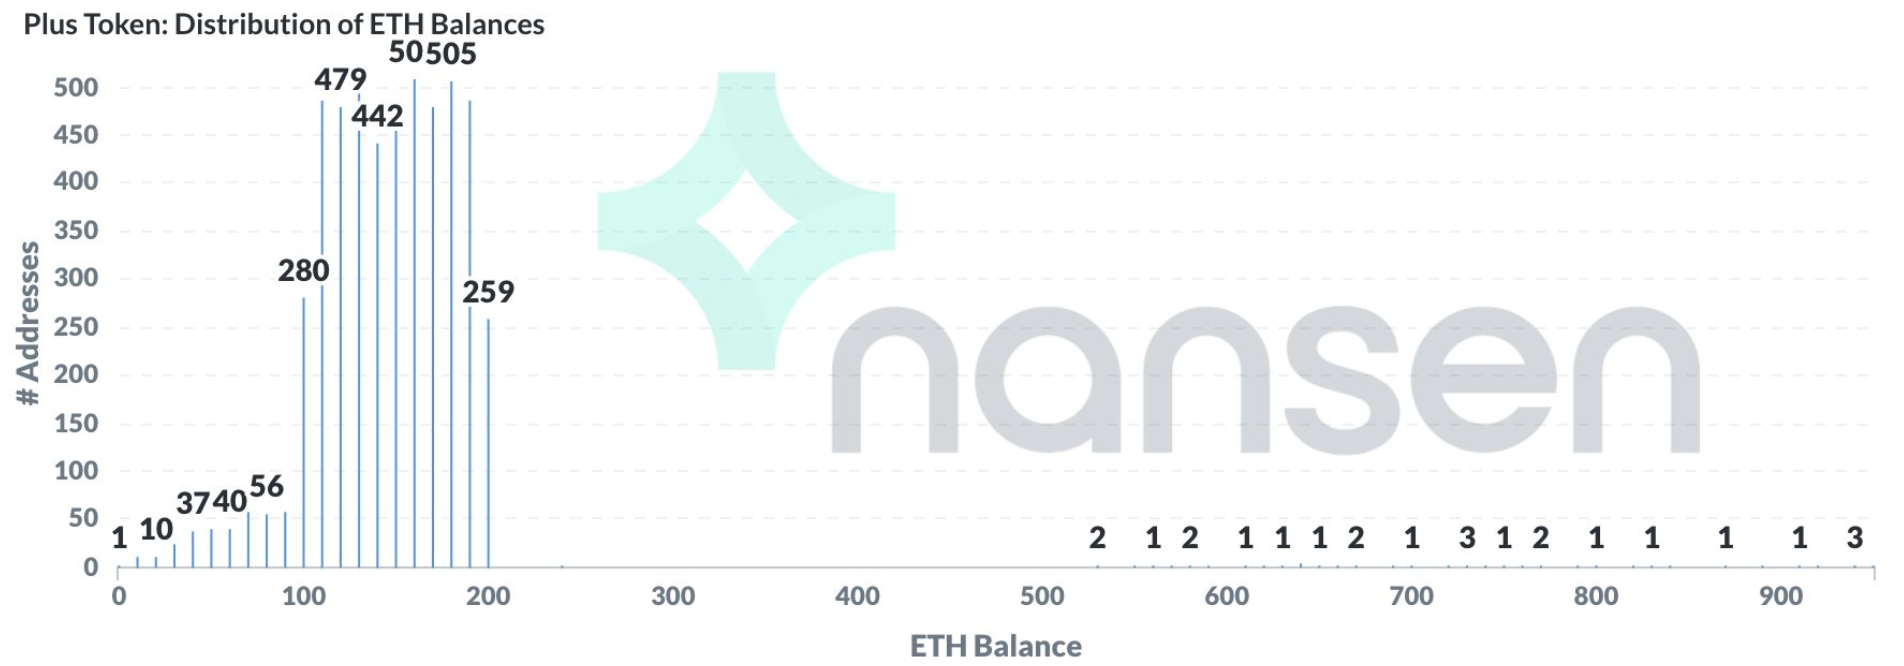 the number of addresses for different ETH balances